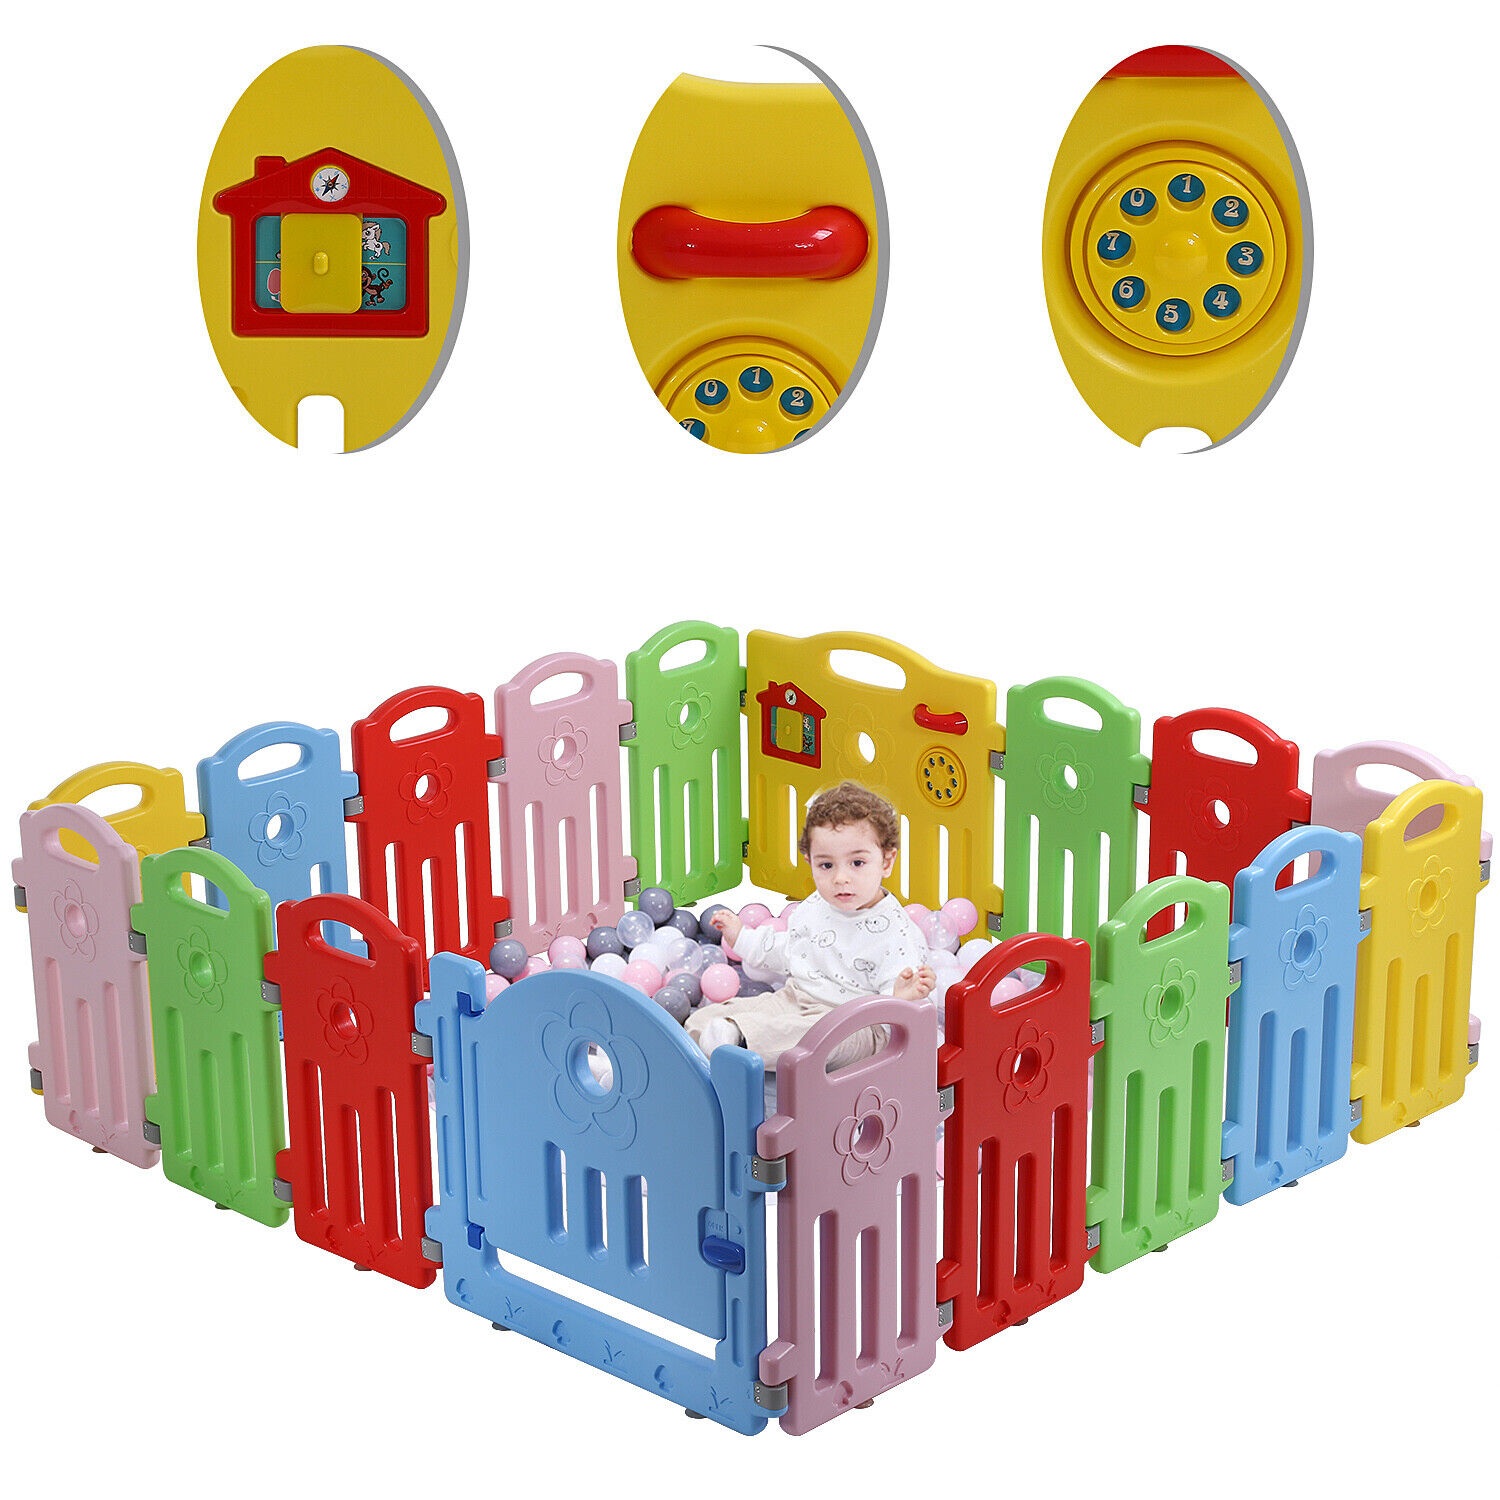 Baby Playpen 18 Panels Infants Toddler Safety Kids Play Pens w/ Activity Board Baby